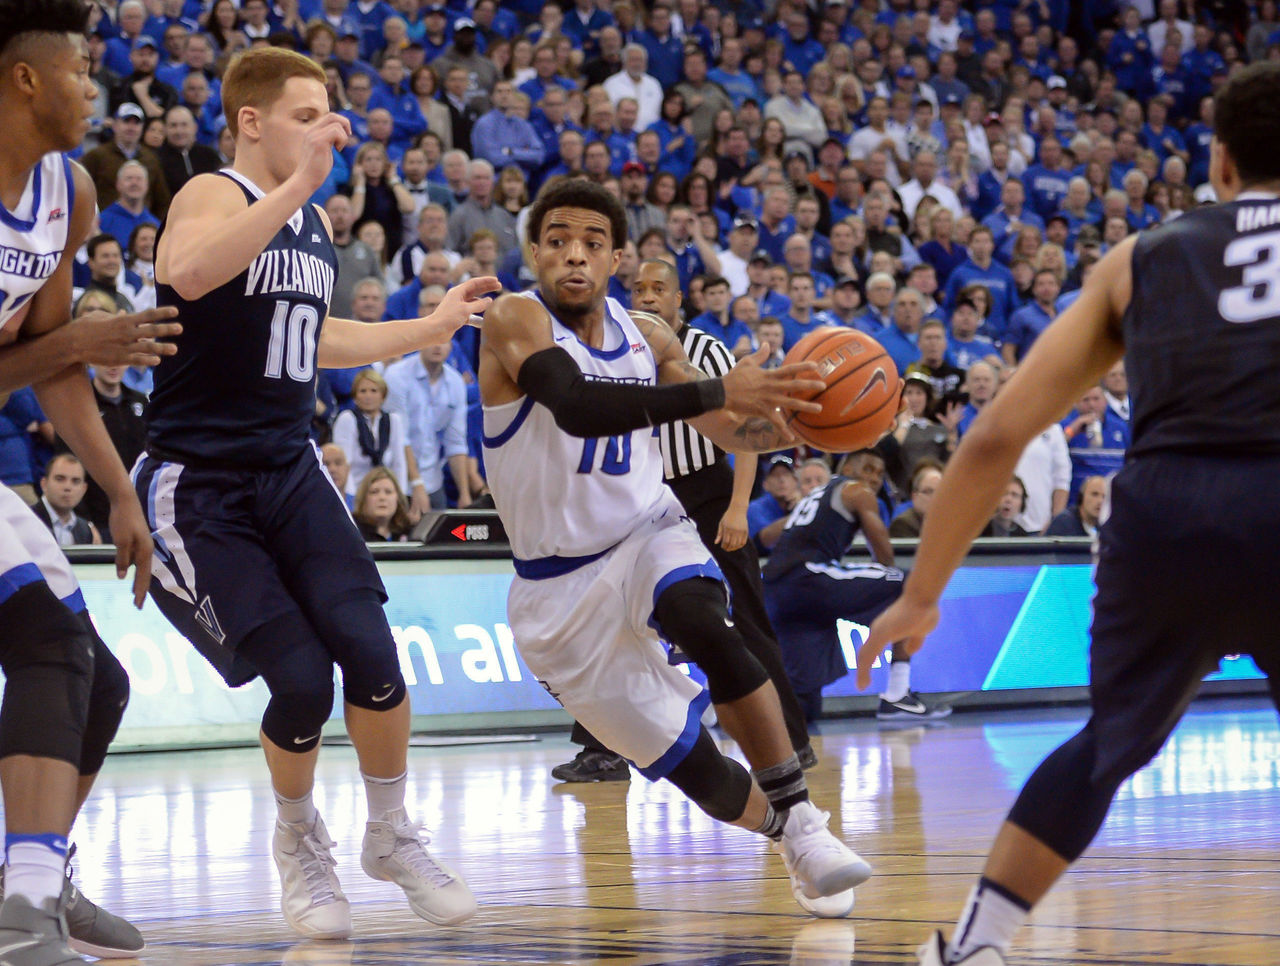 Cropped 2016 12 31t210811z 1109340655 nocid rtrmadp 3 ncaa basketball villanova at creighton